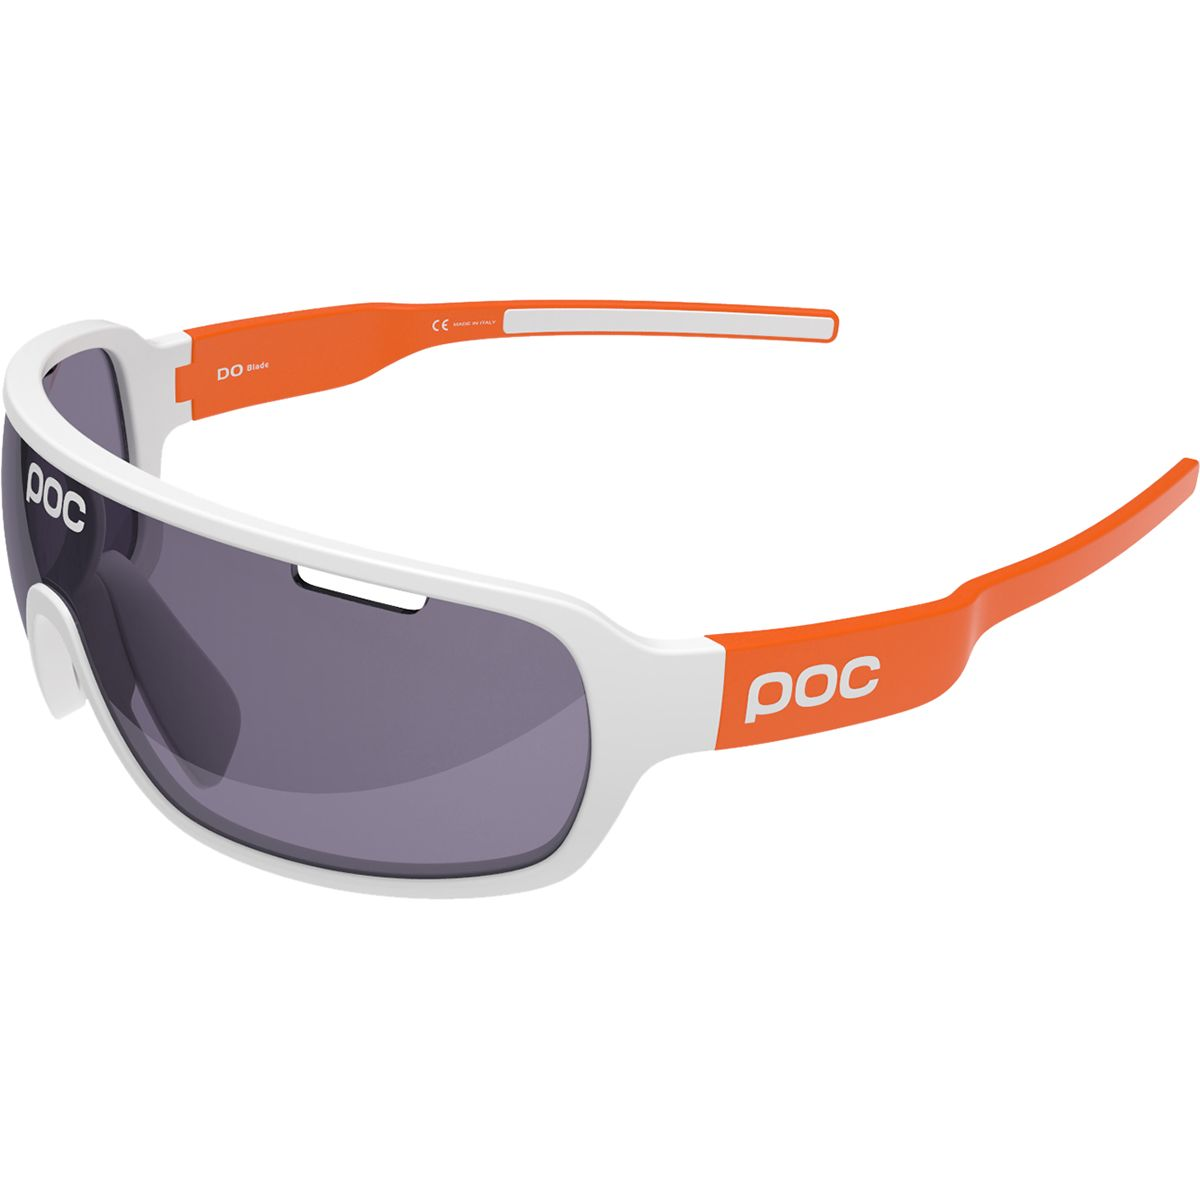 POC DO Blade AVIP Sunglasses Men's